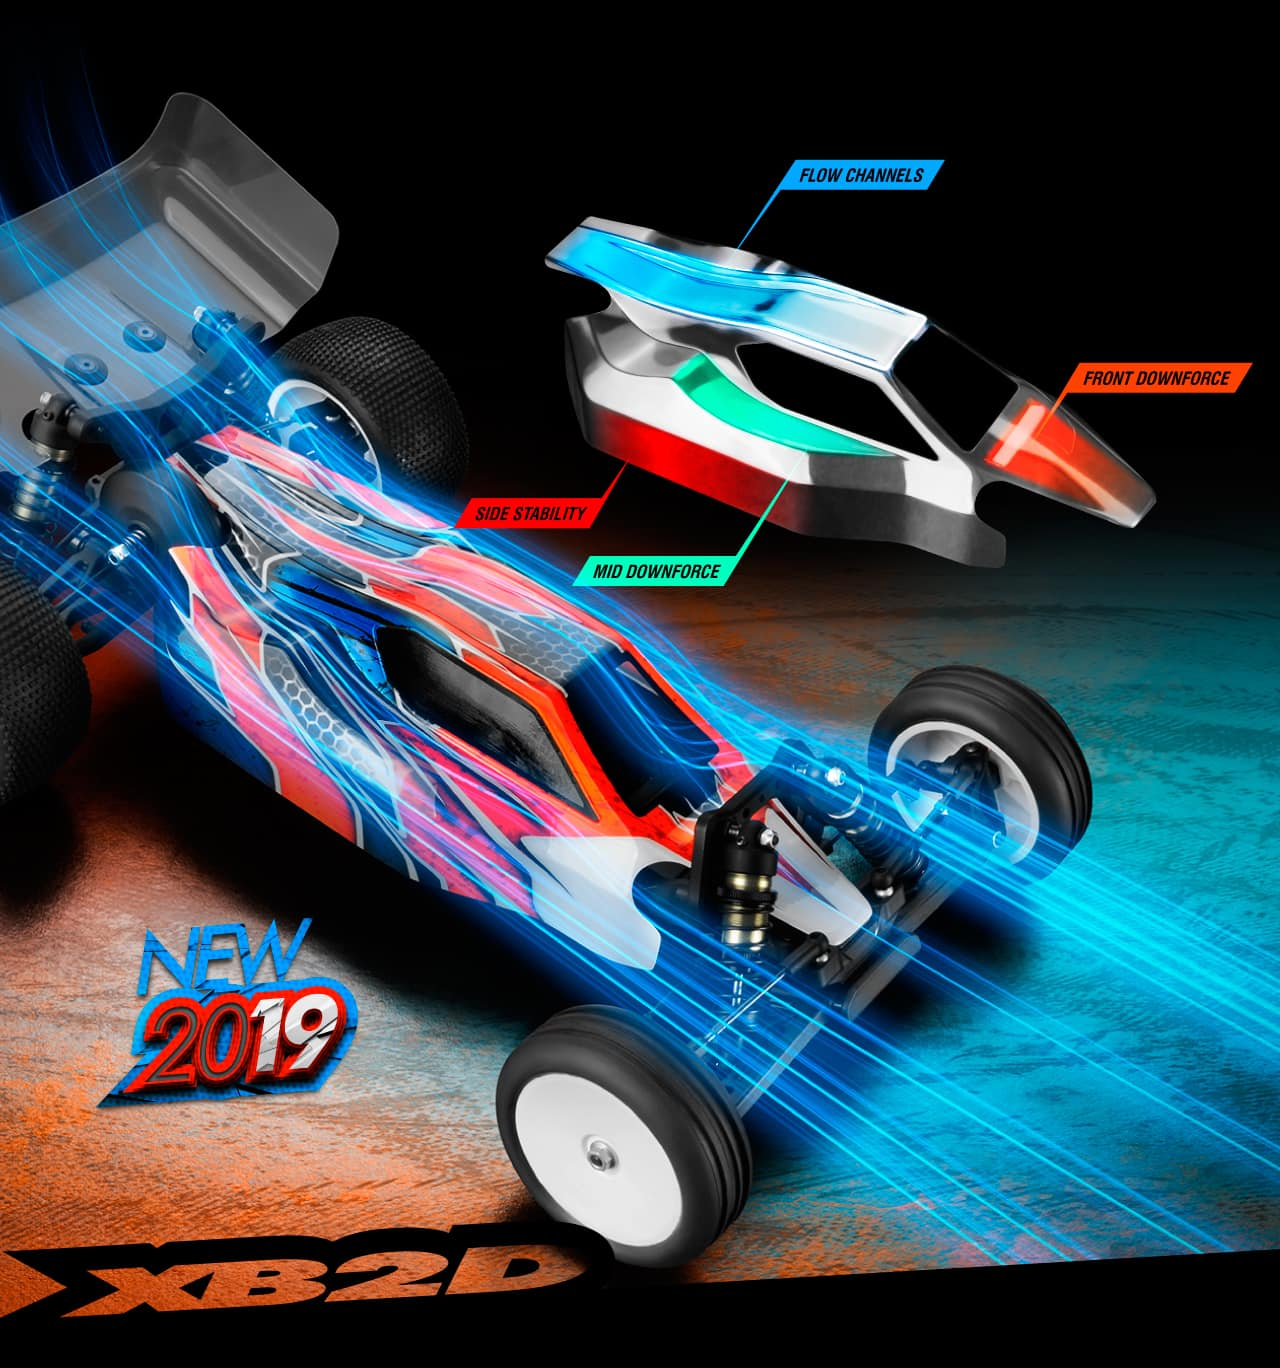 XRay XB2D-19 Competition RC Buggy - Body